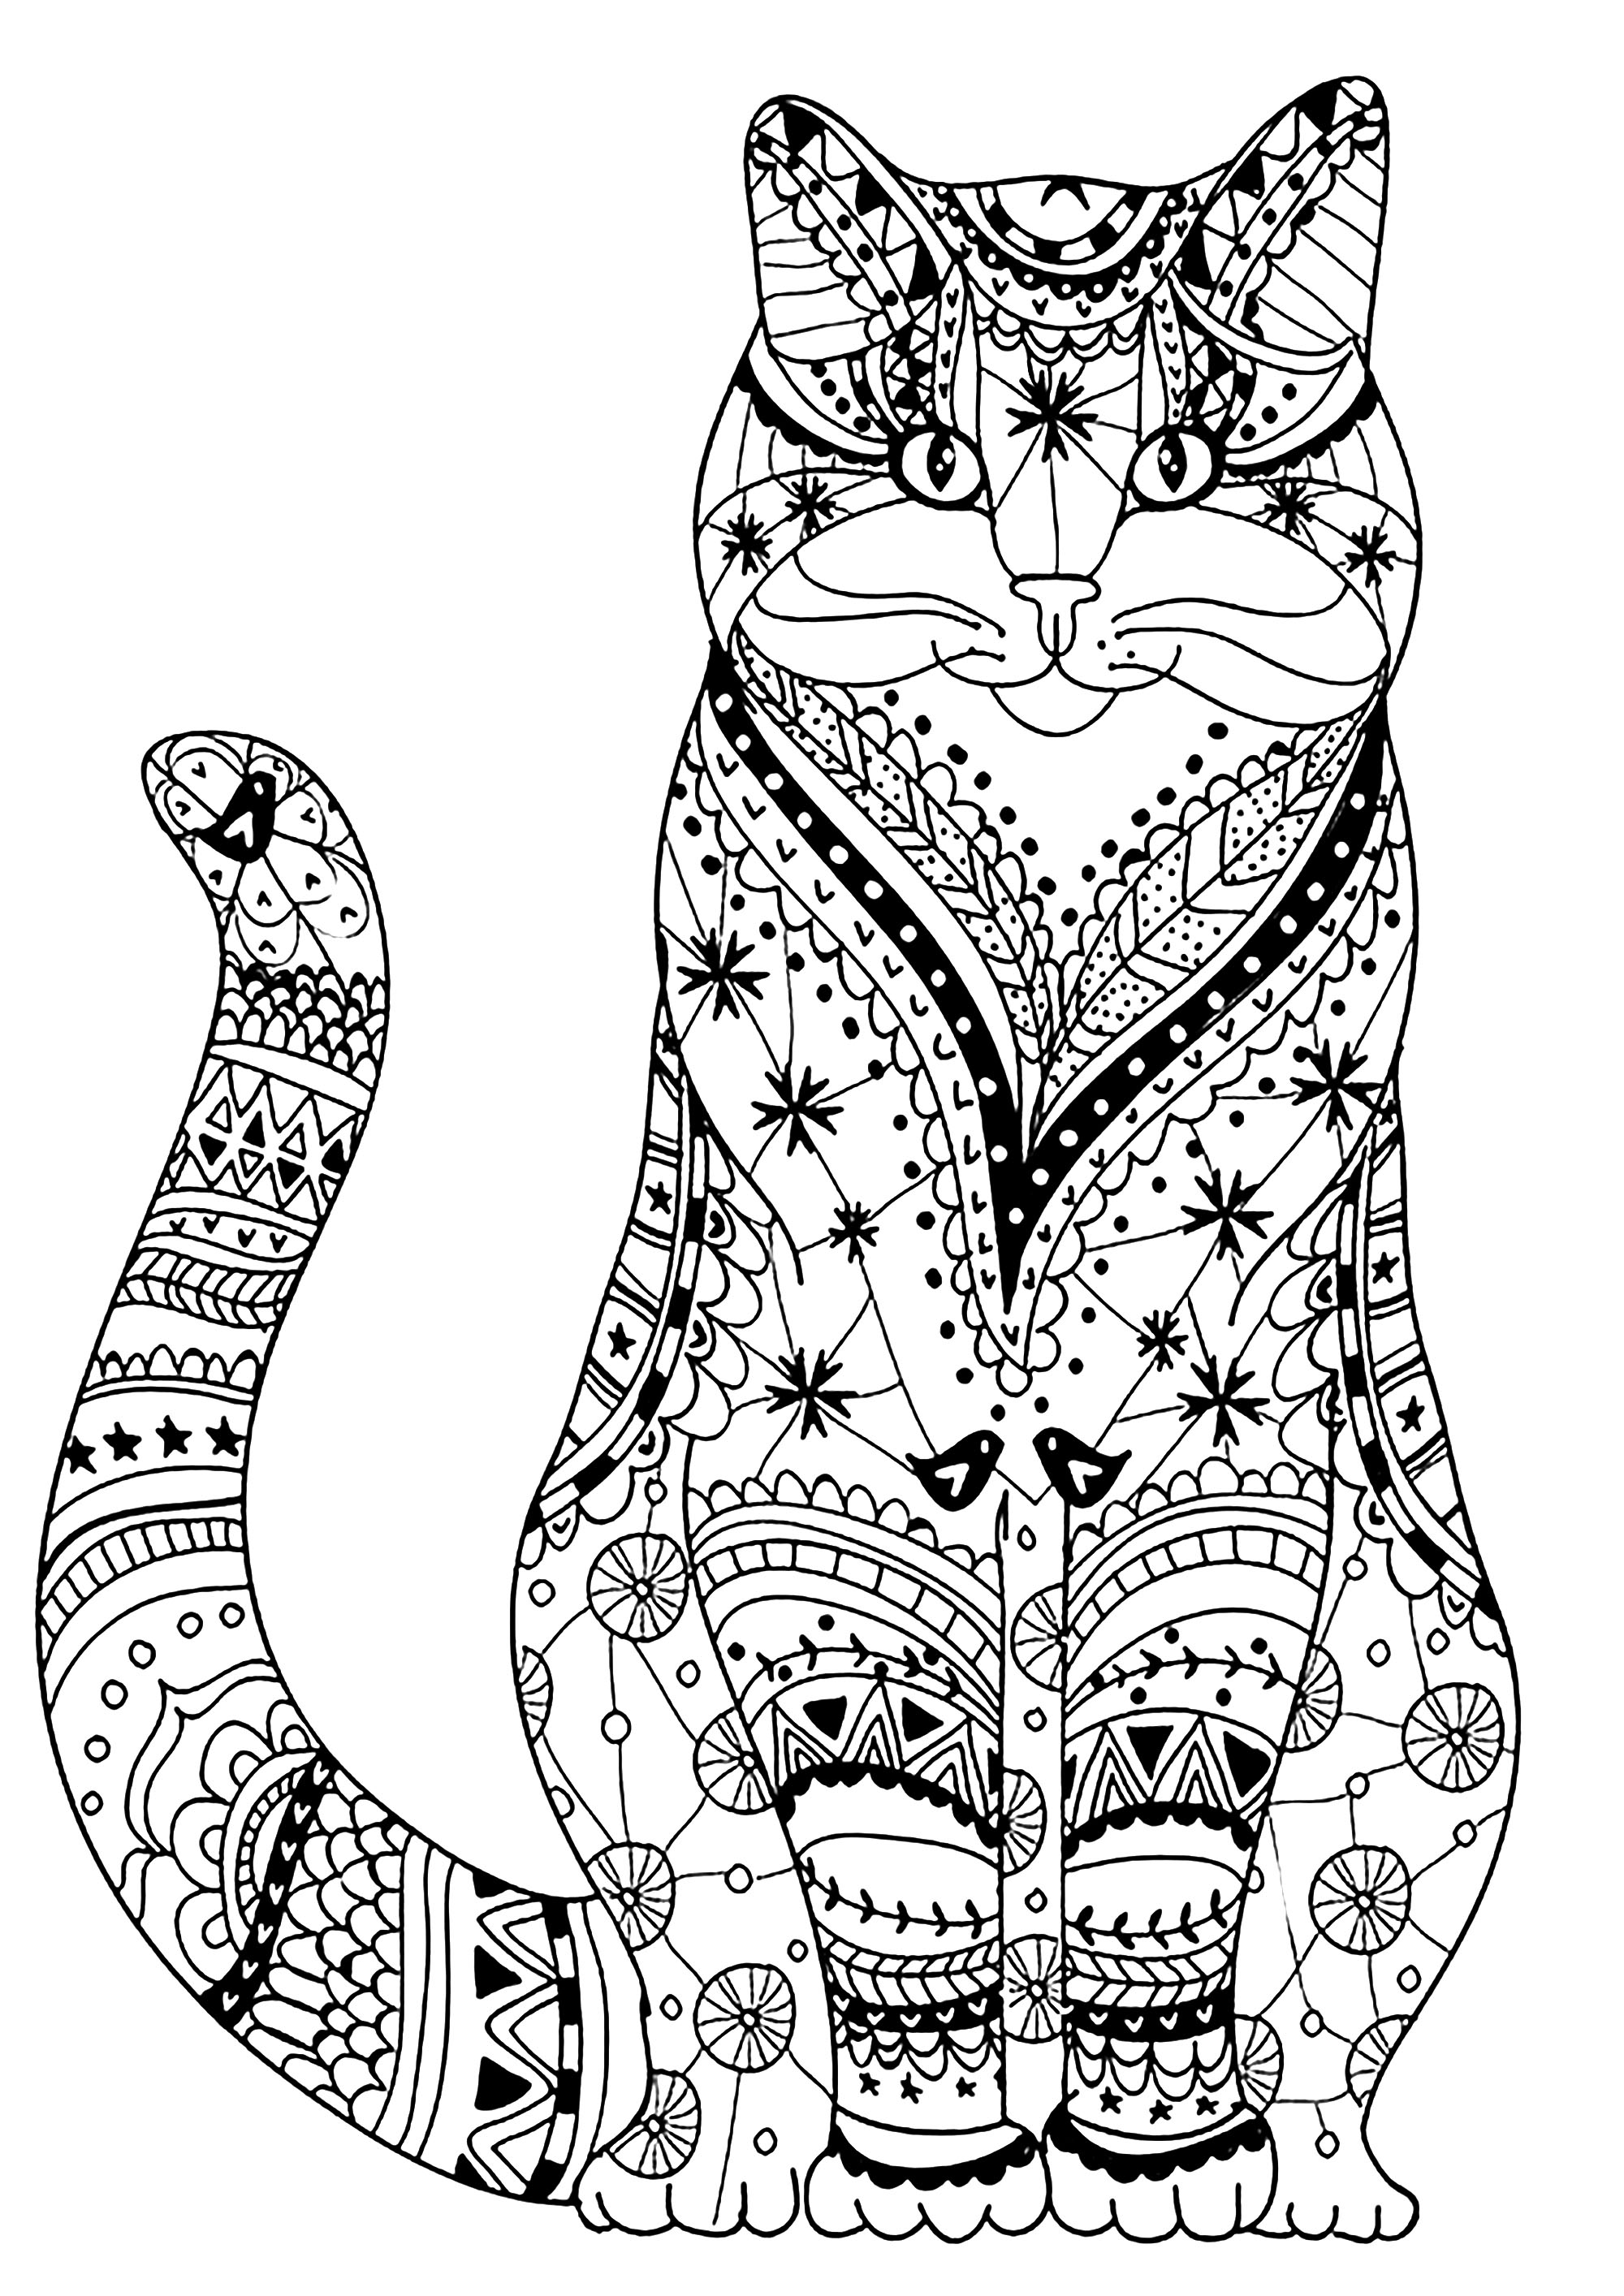 Cat drawn with Zentangles